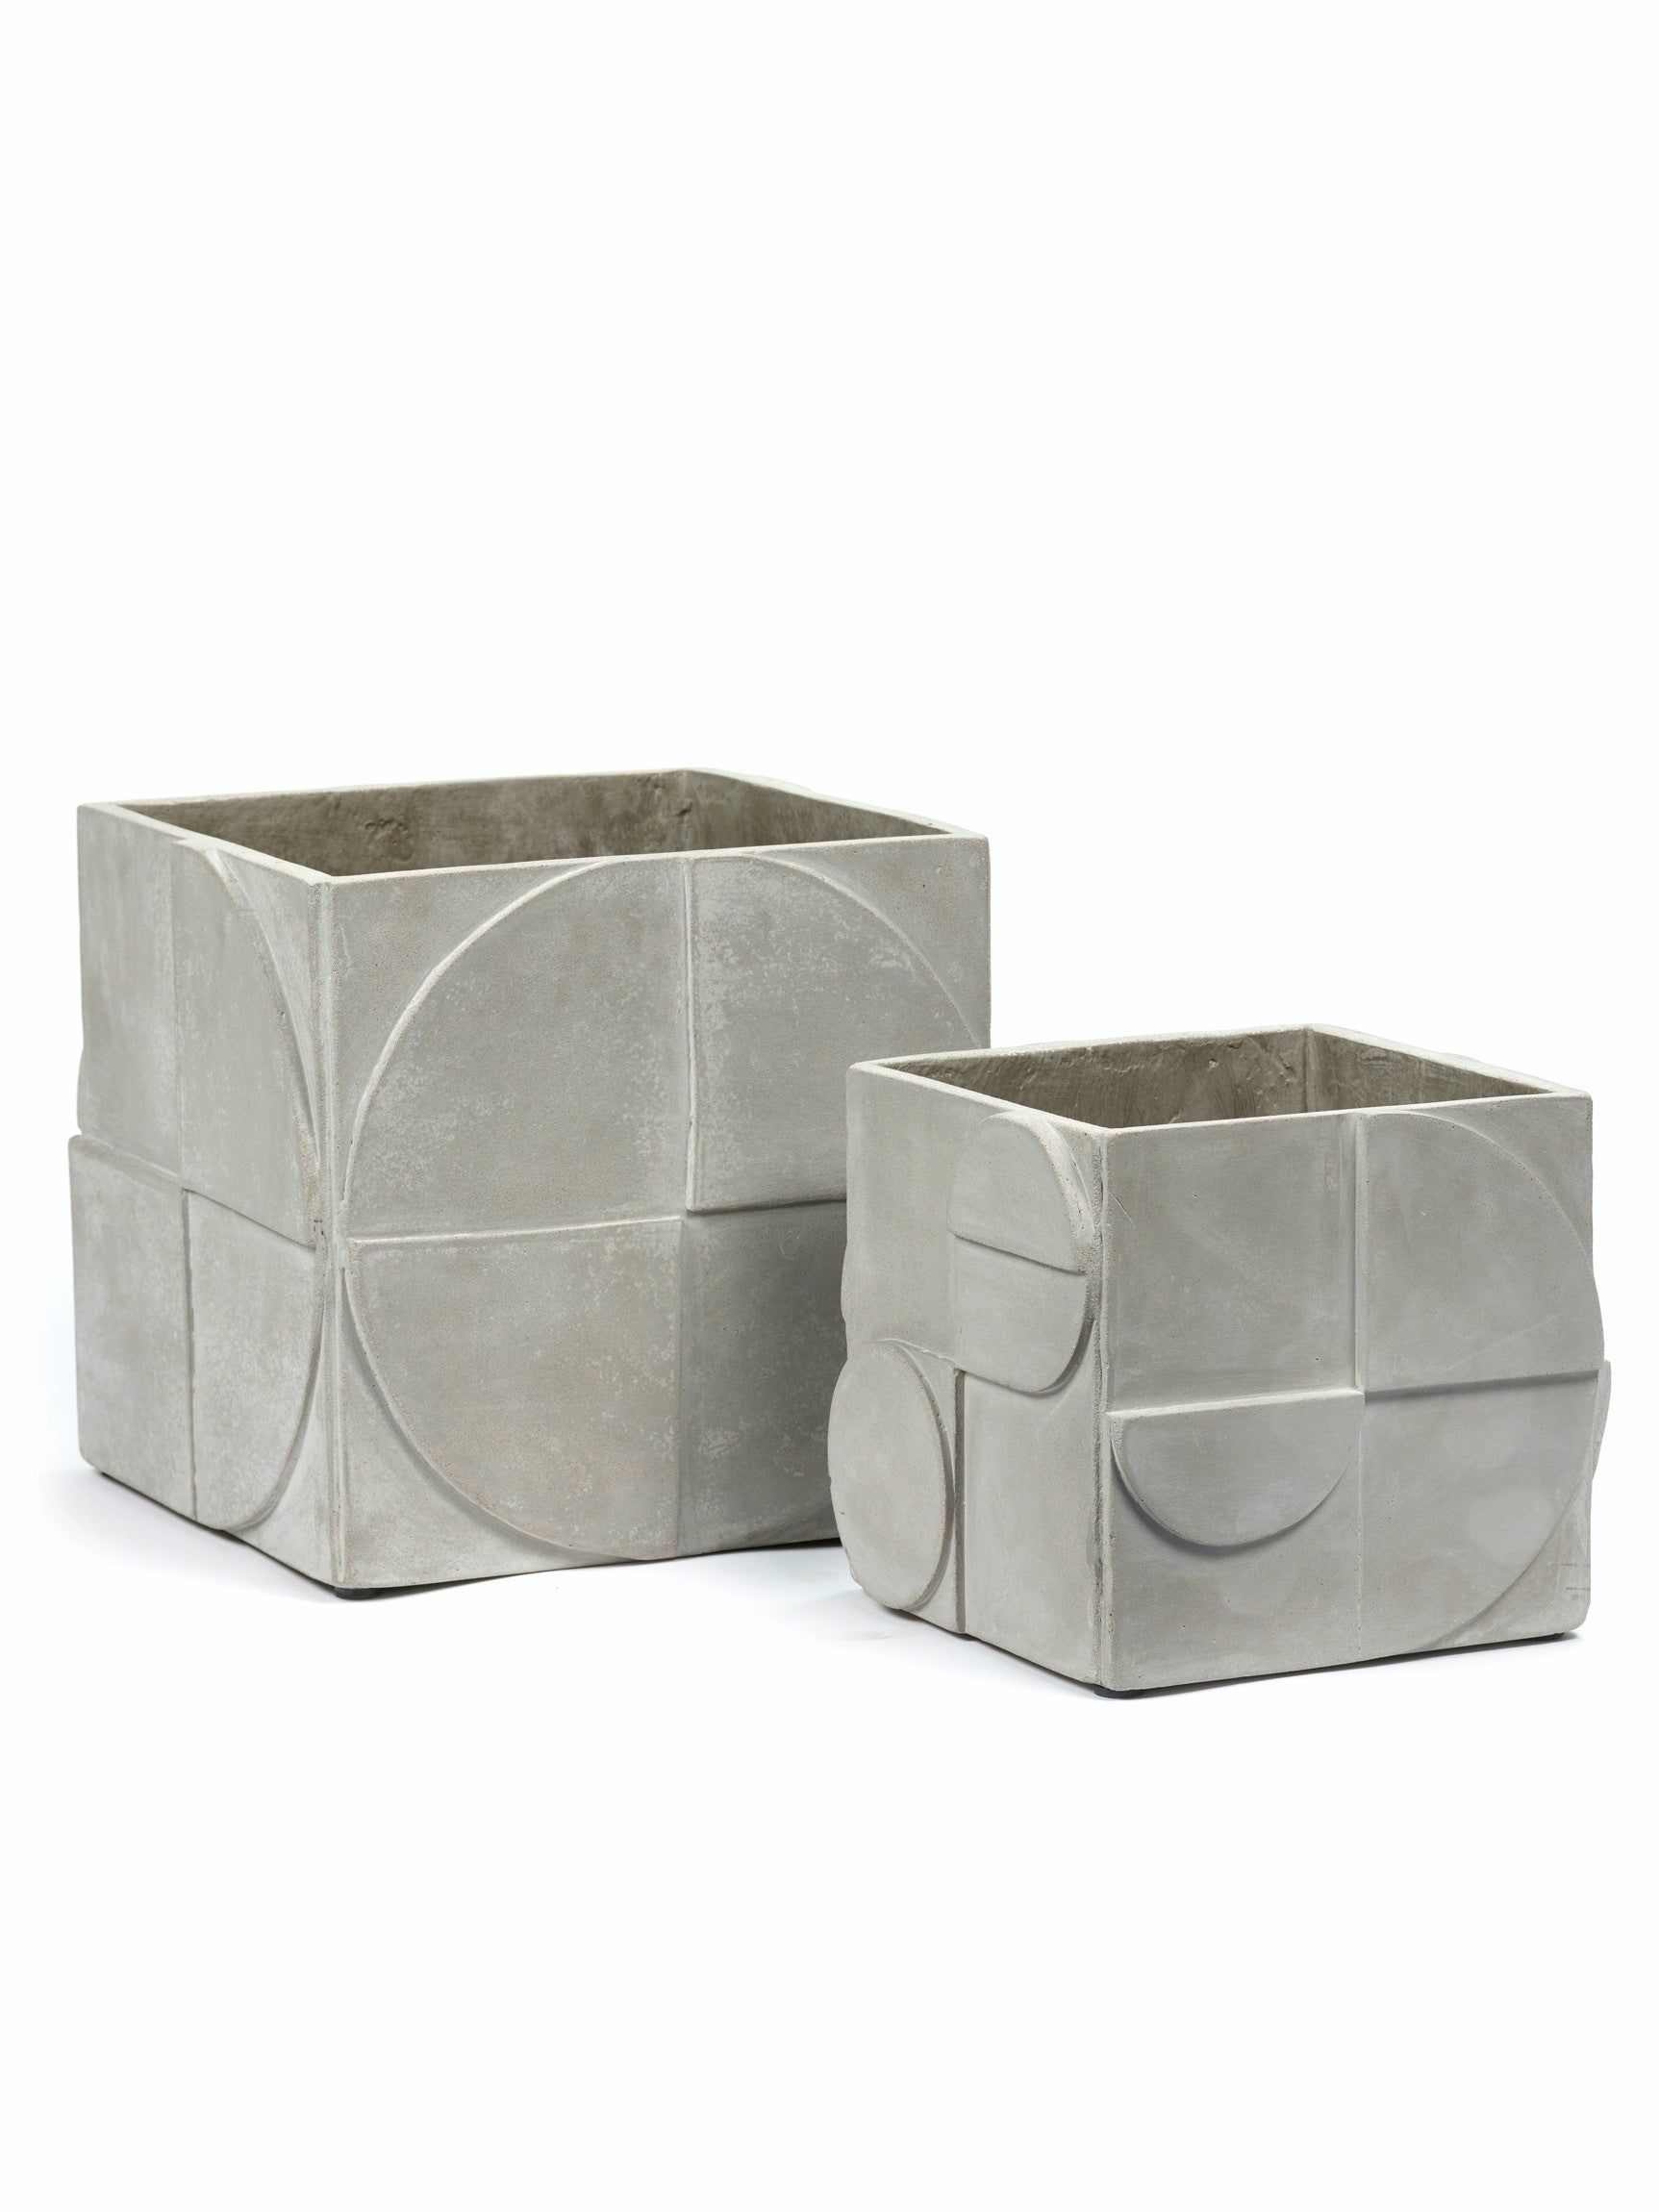 Pot Seventies Grey Concrete